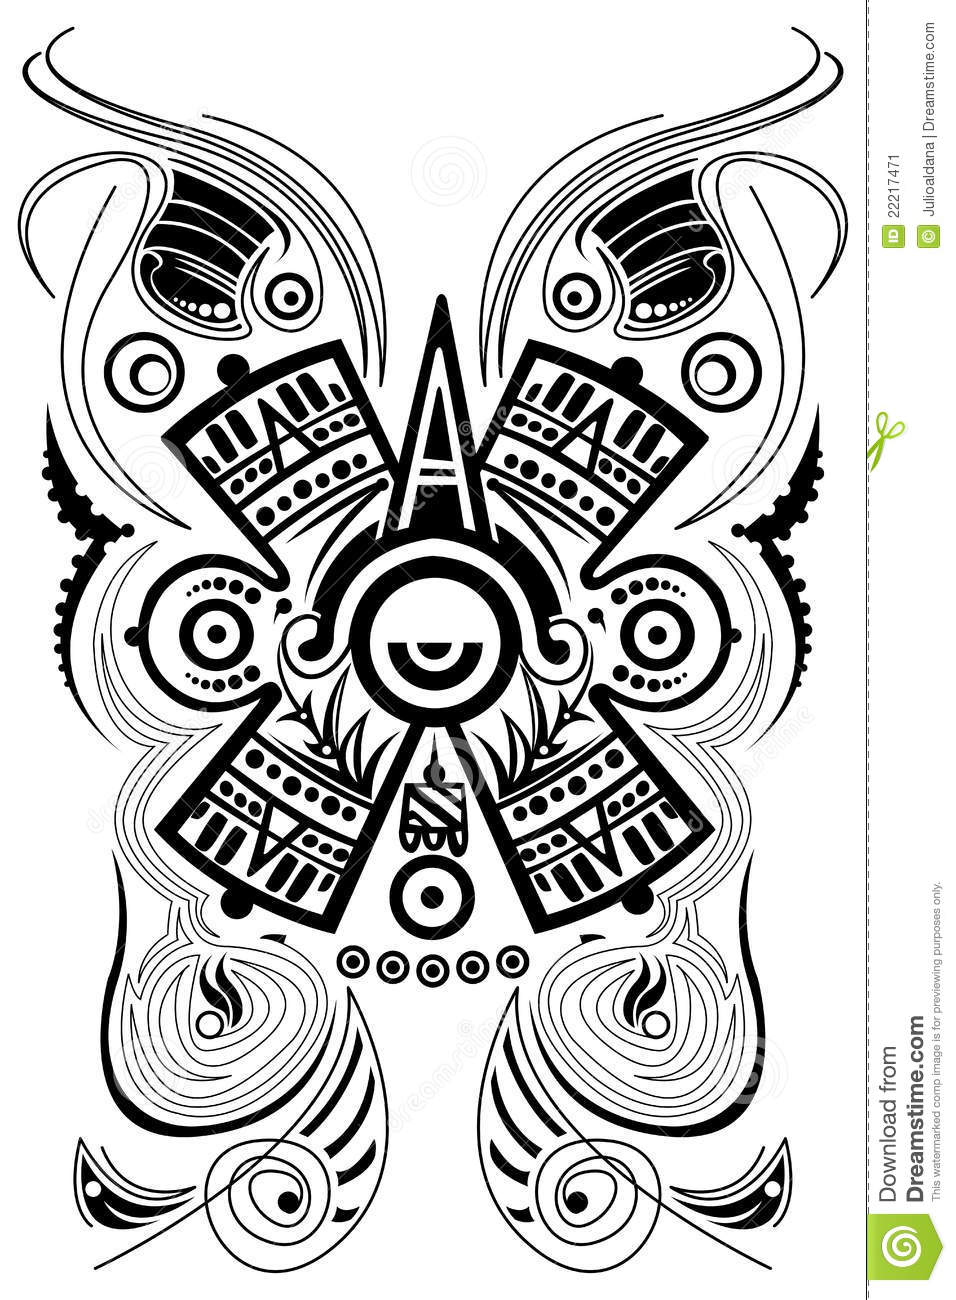 Stylized mayan symbol tattoo vector stock vector stylized mayan symbol tattoo vector biocorpaavc